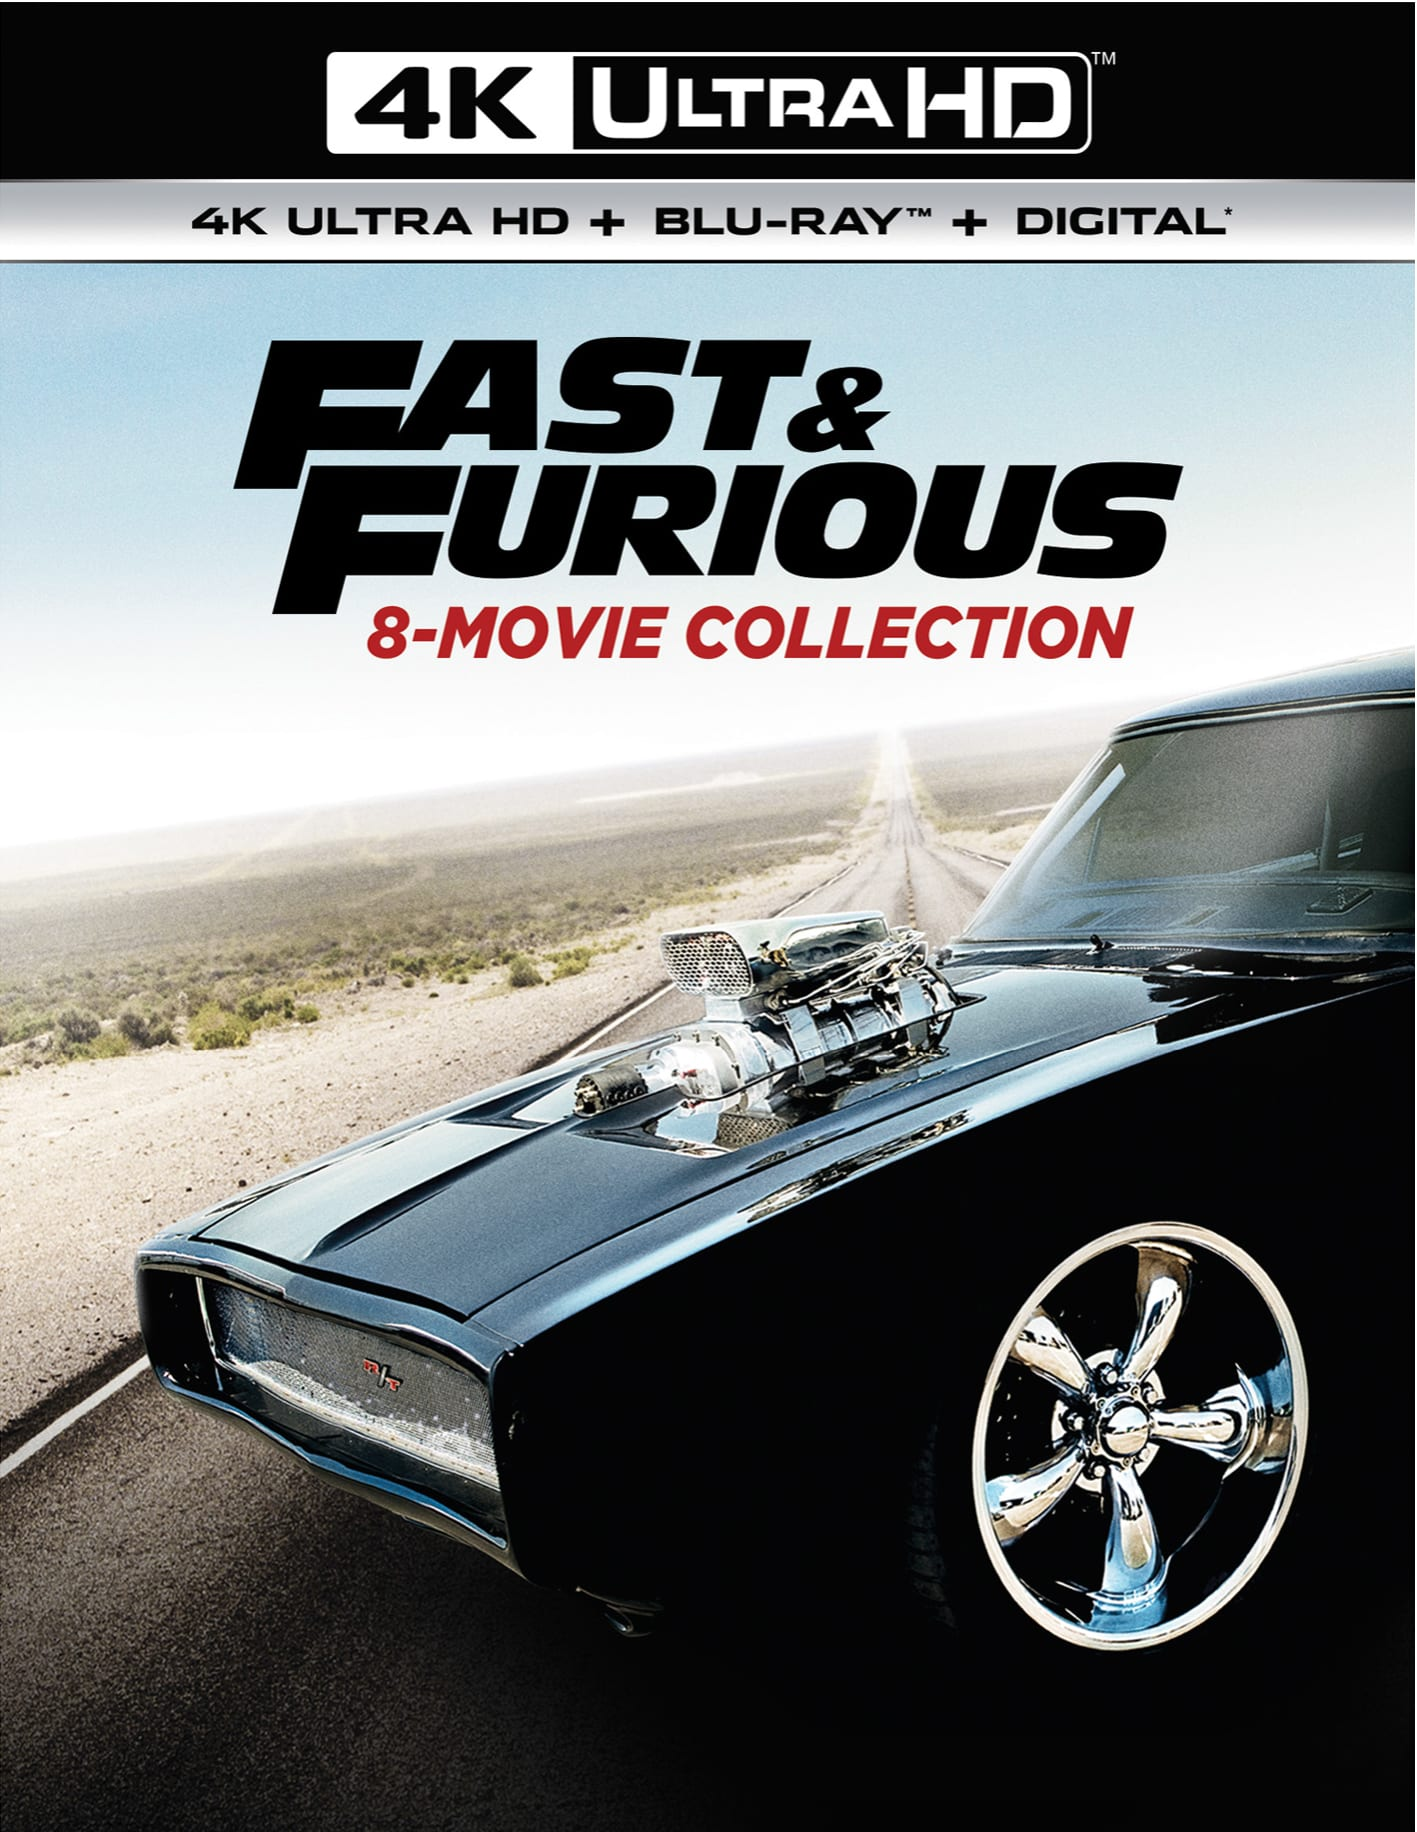 Fast & Furious: 8-movie Collection (4K Ultra HD) [UHD]